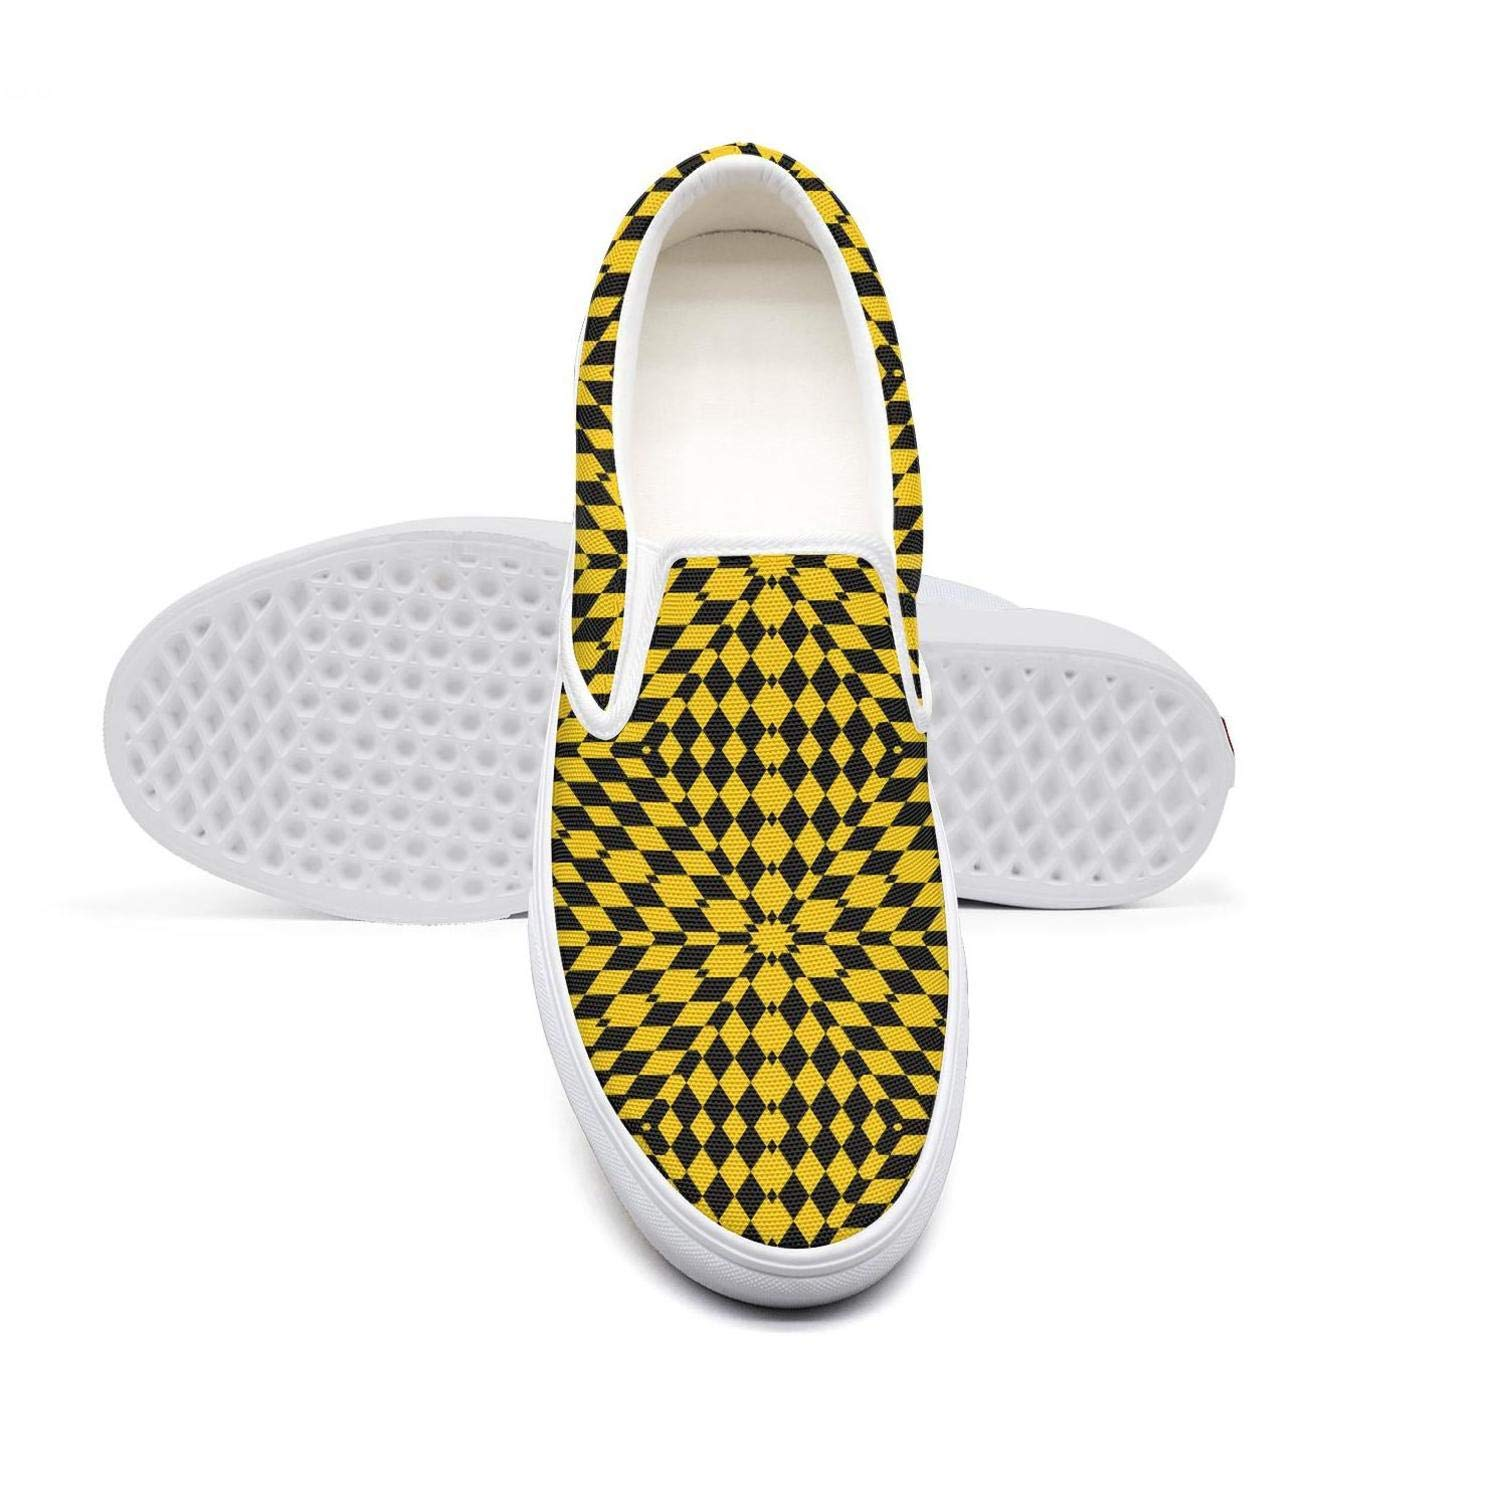 Vosda Mens Texture from Rhombus Checkerboard Basketball Sneakers for Mens Breathable Running Shoes